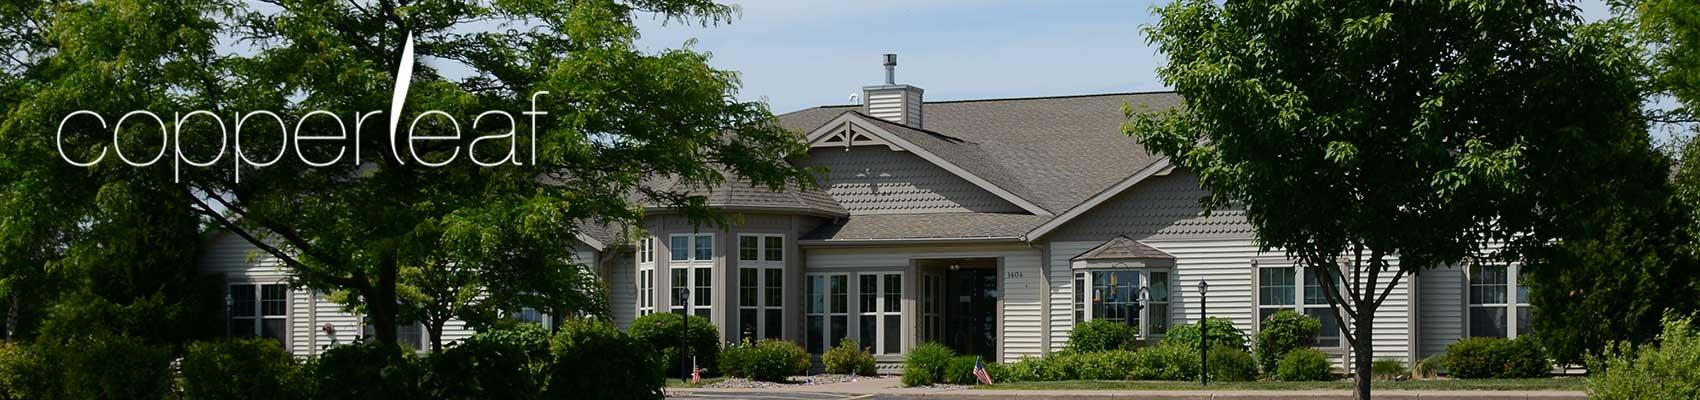 assisted living facilities in Johnson Wisconsin Marathon County